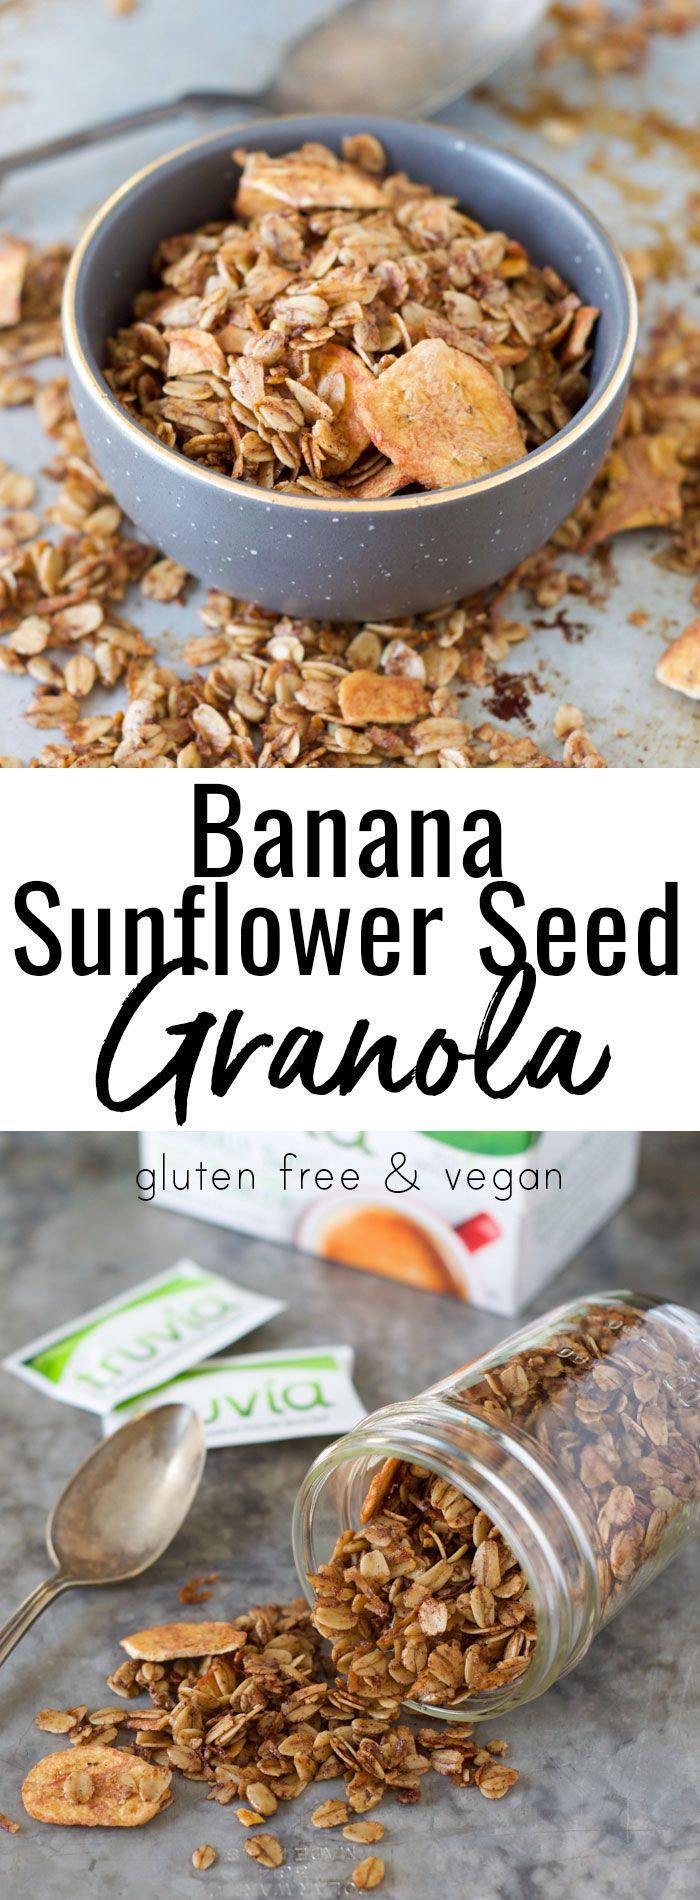 Looking For A Great Meal Prep Breakfast Recipe That S Lower In Sugar And Allergy Friendly Make This Gluten Free Vegan Banana Sunflower Seed Gr